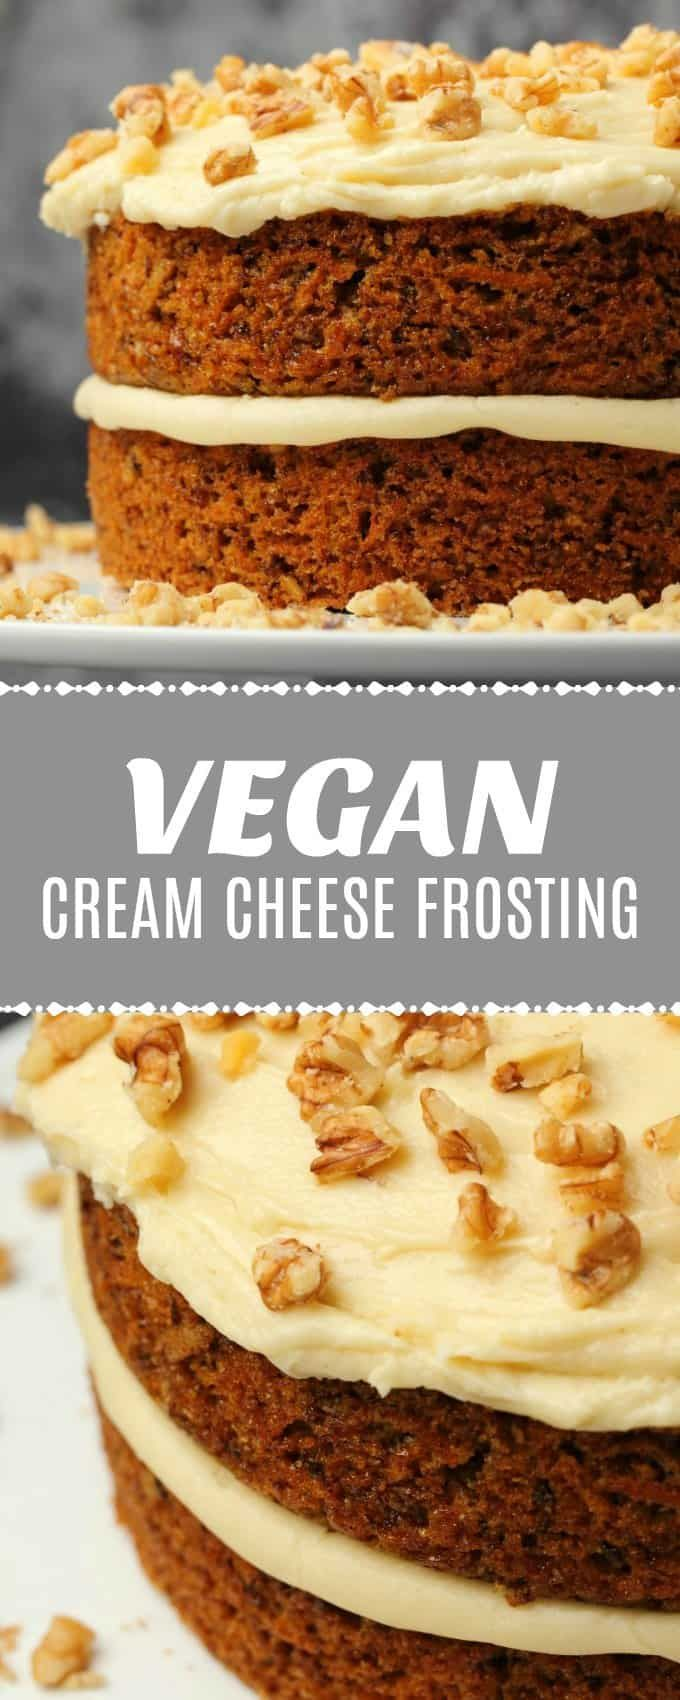 Vegan Cream Cheese Frosting #creamcheeserecipes